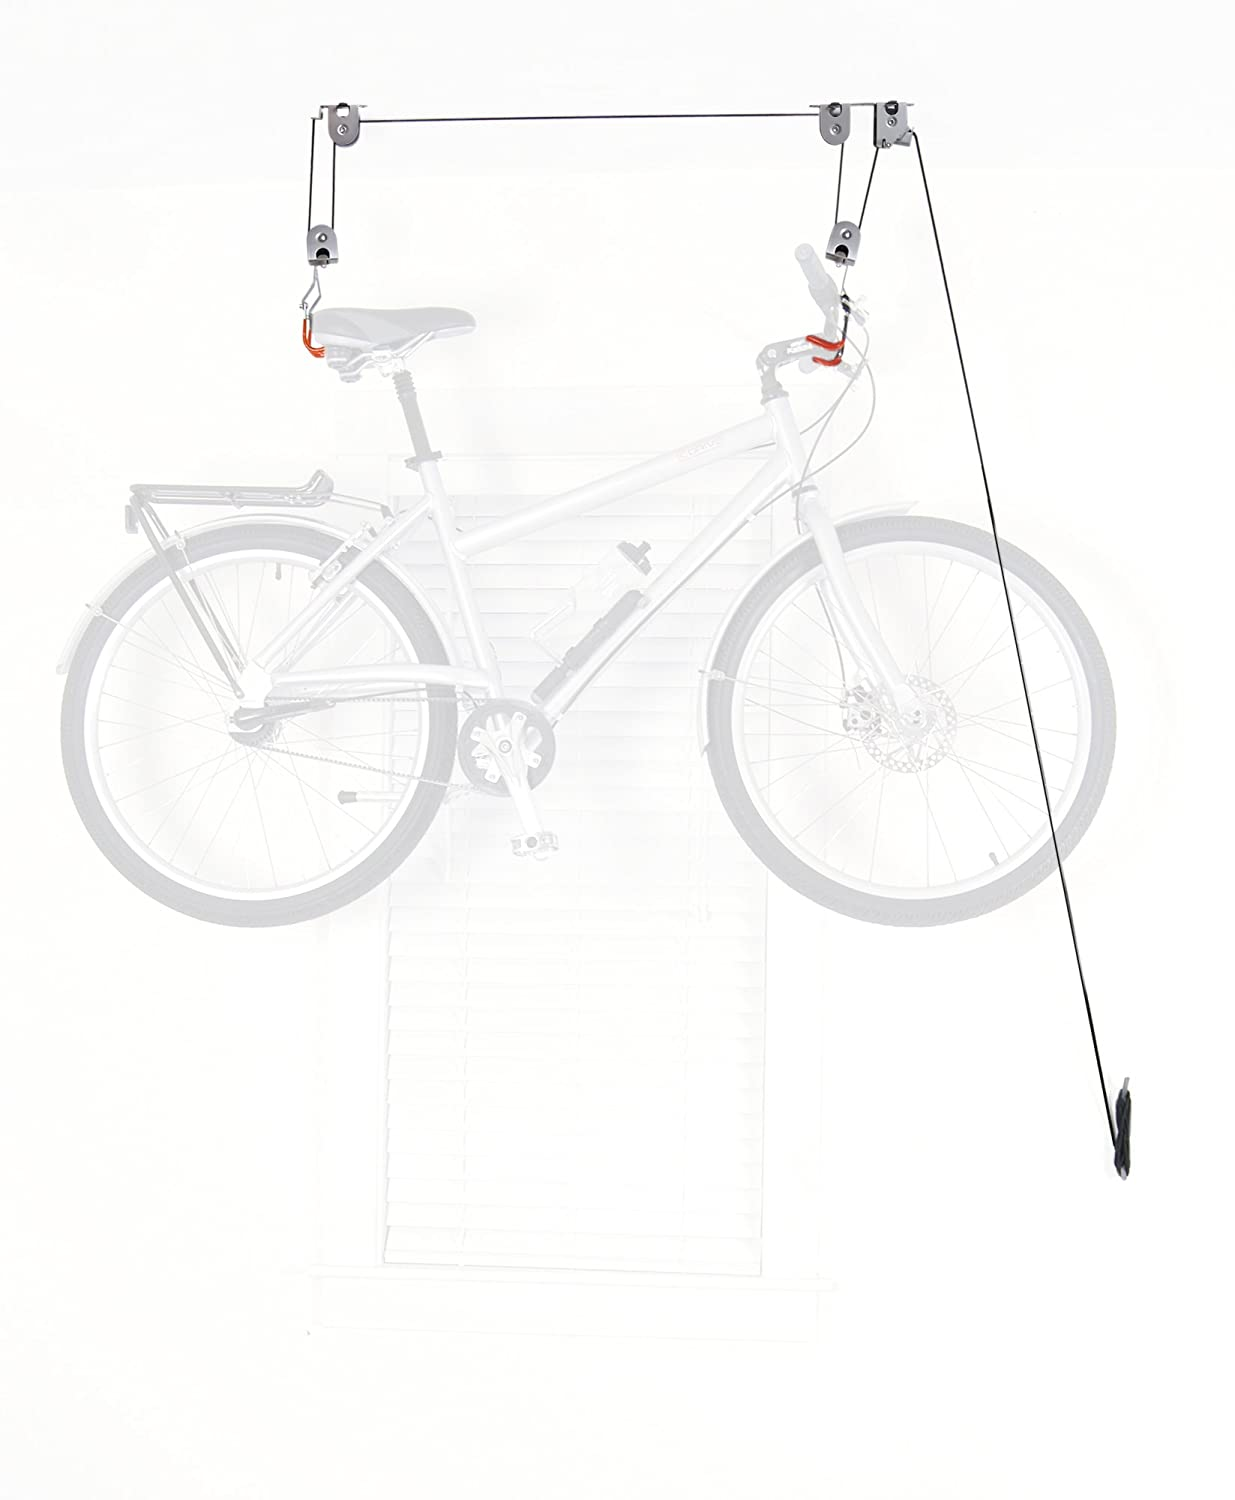 Delta Cycle El Greco Bike Hoist for Garage Lift Space Storage Kayak Delta Cycle Corp RS2300